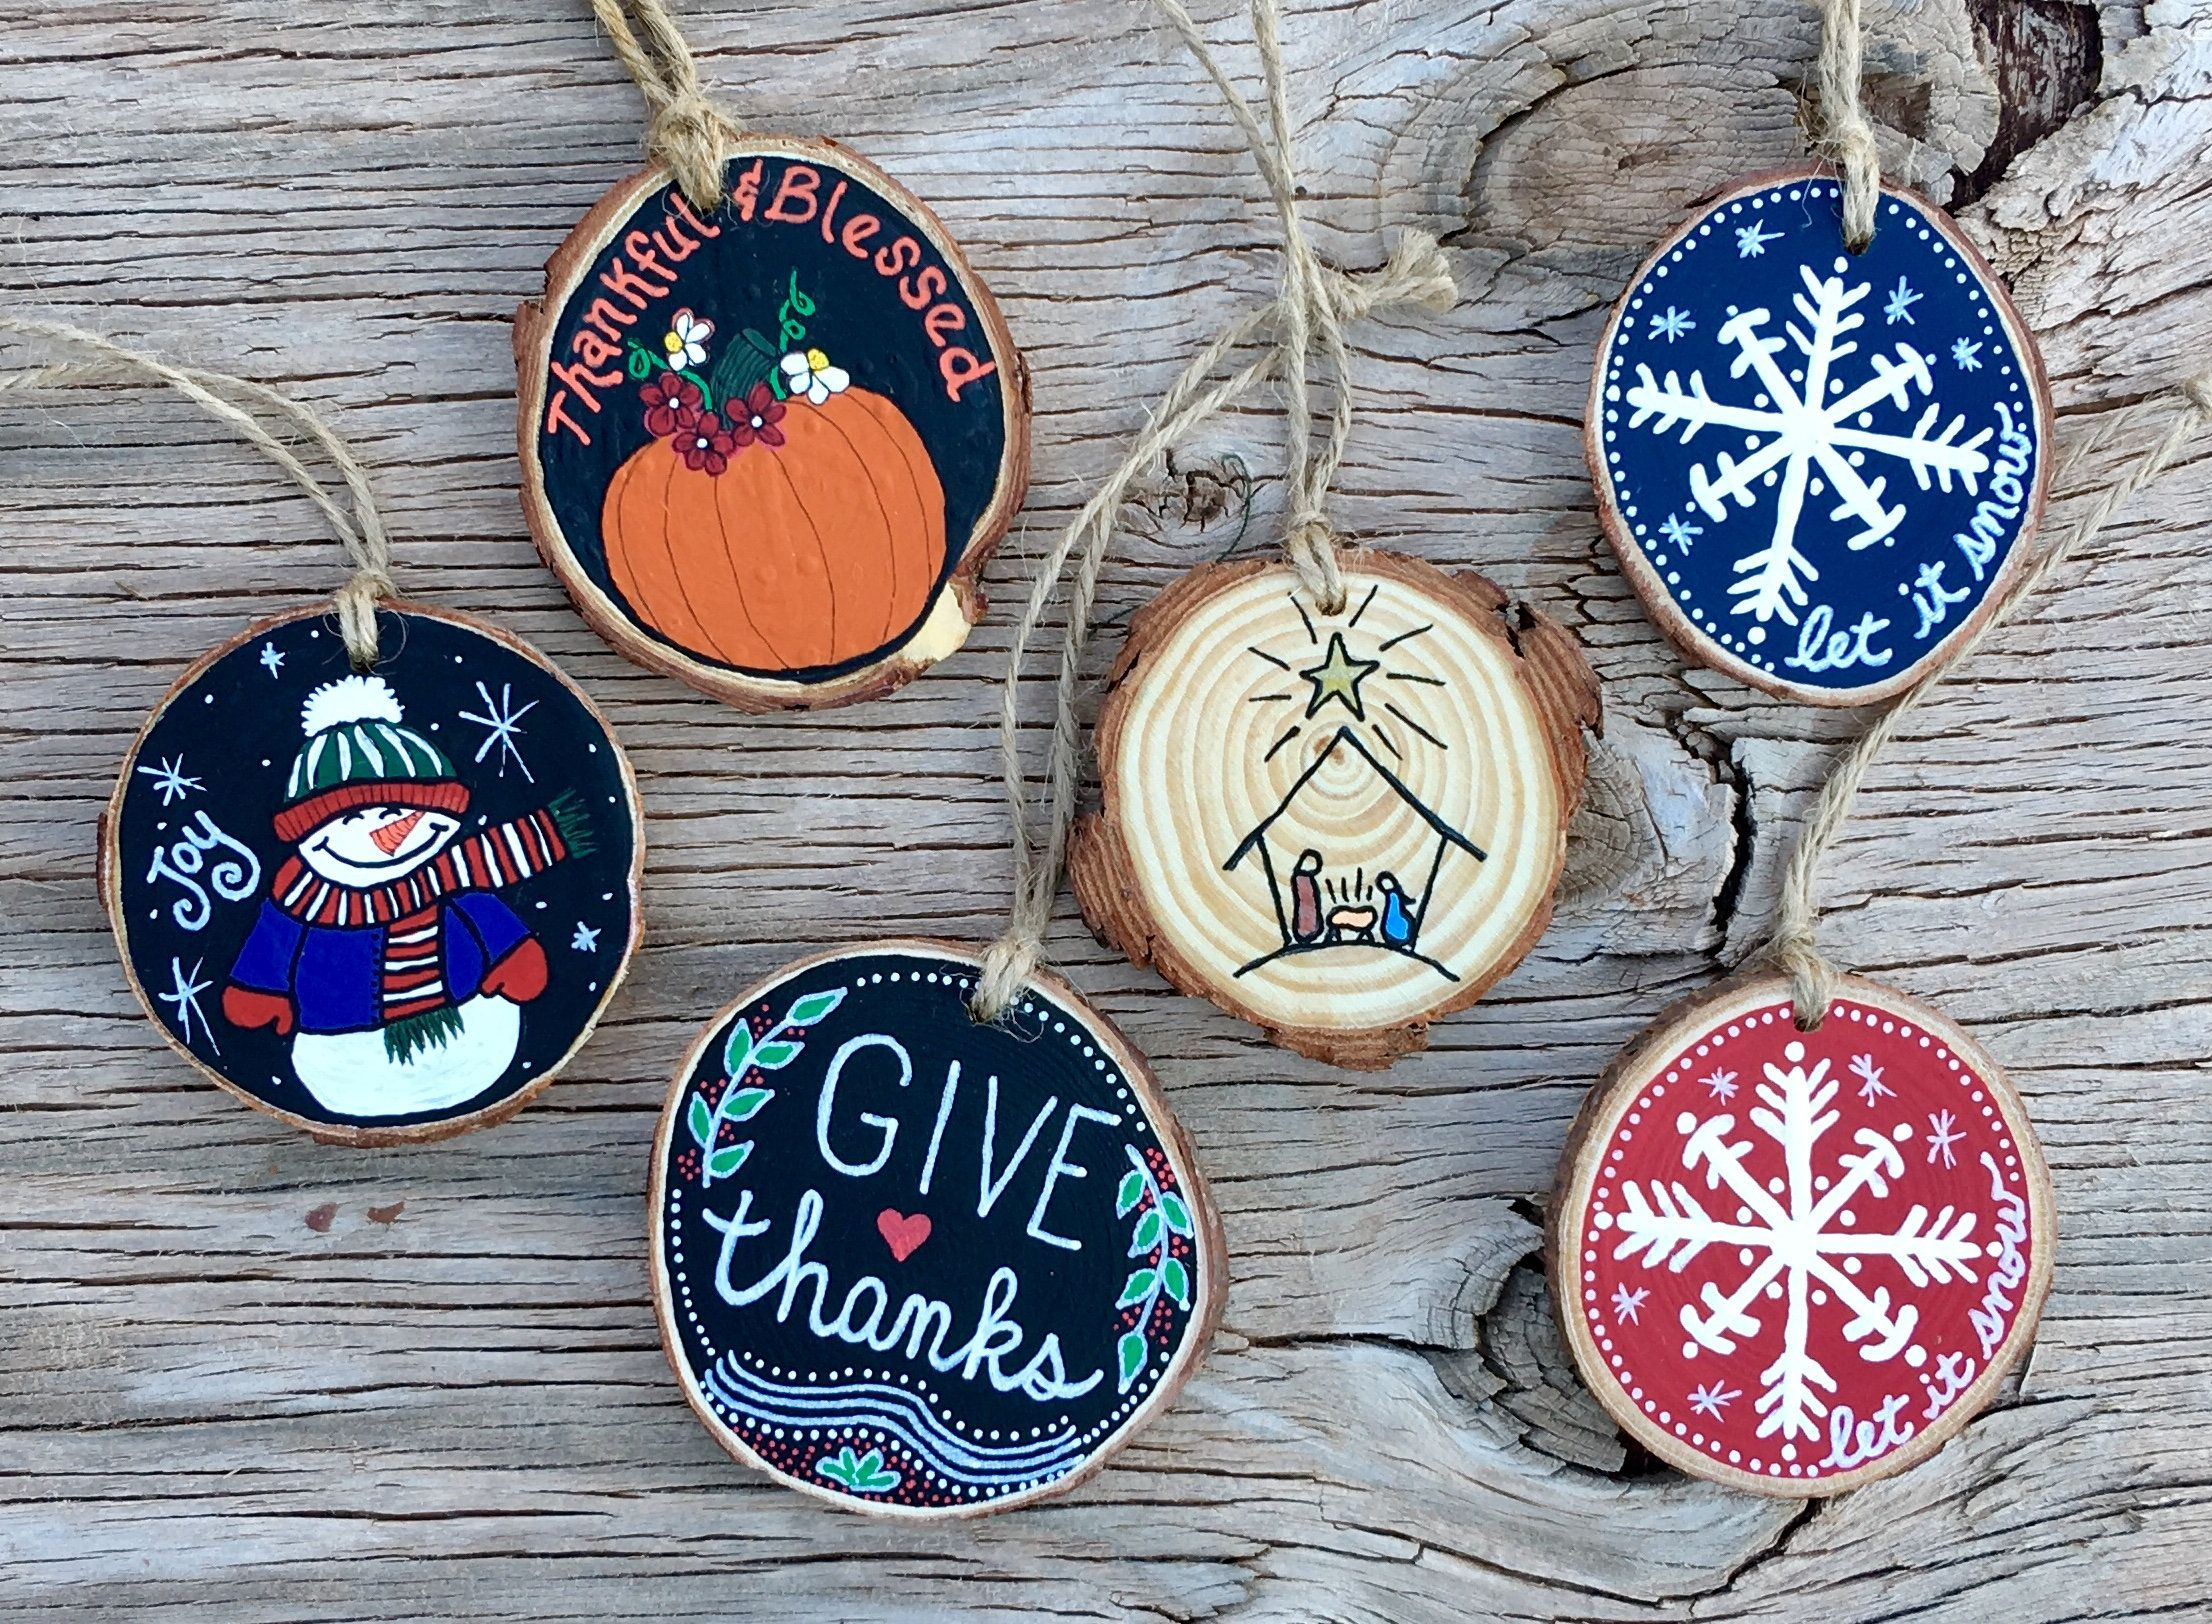 Hand Painted Rustic Wood Slice Ornaments Christmas Holiday Etsy Wood Slice Ornament Christmas Ornament Crafts Christmas Ornaments